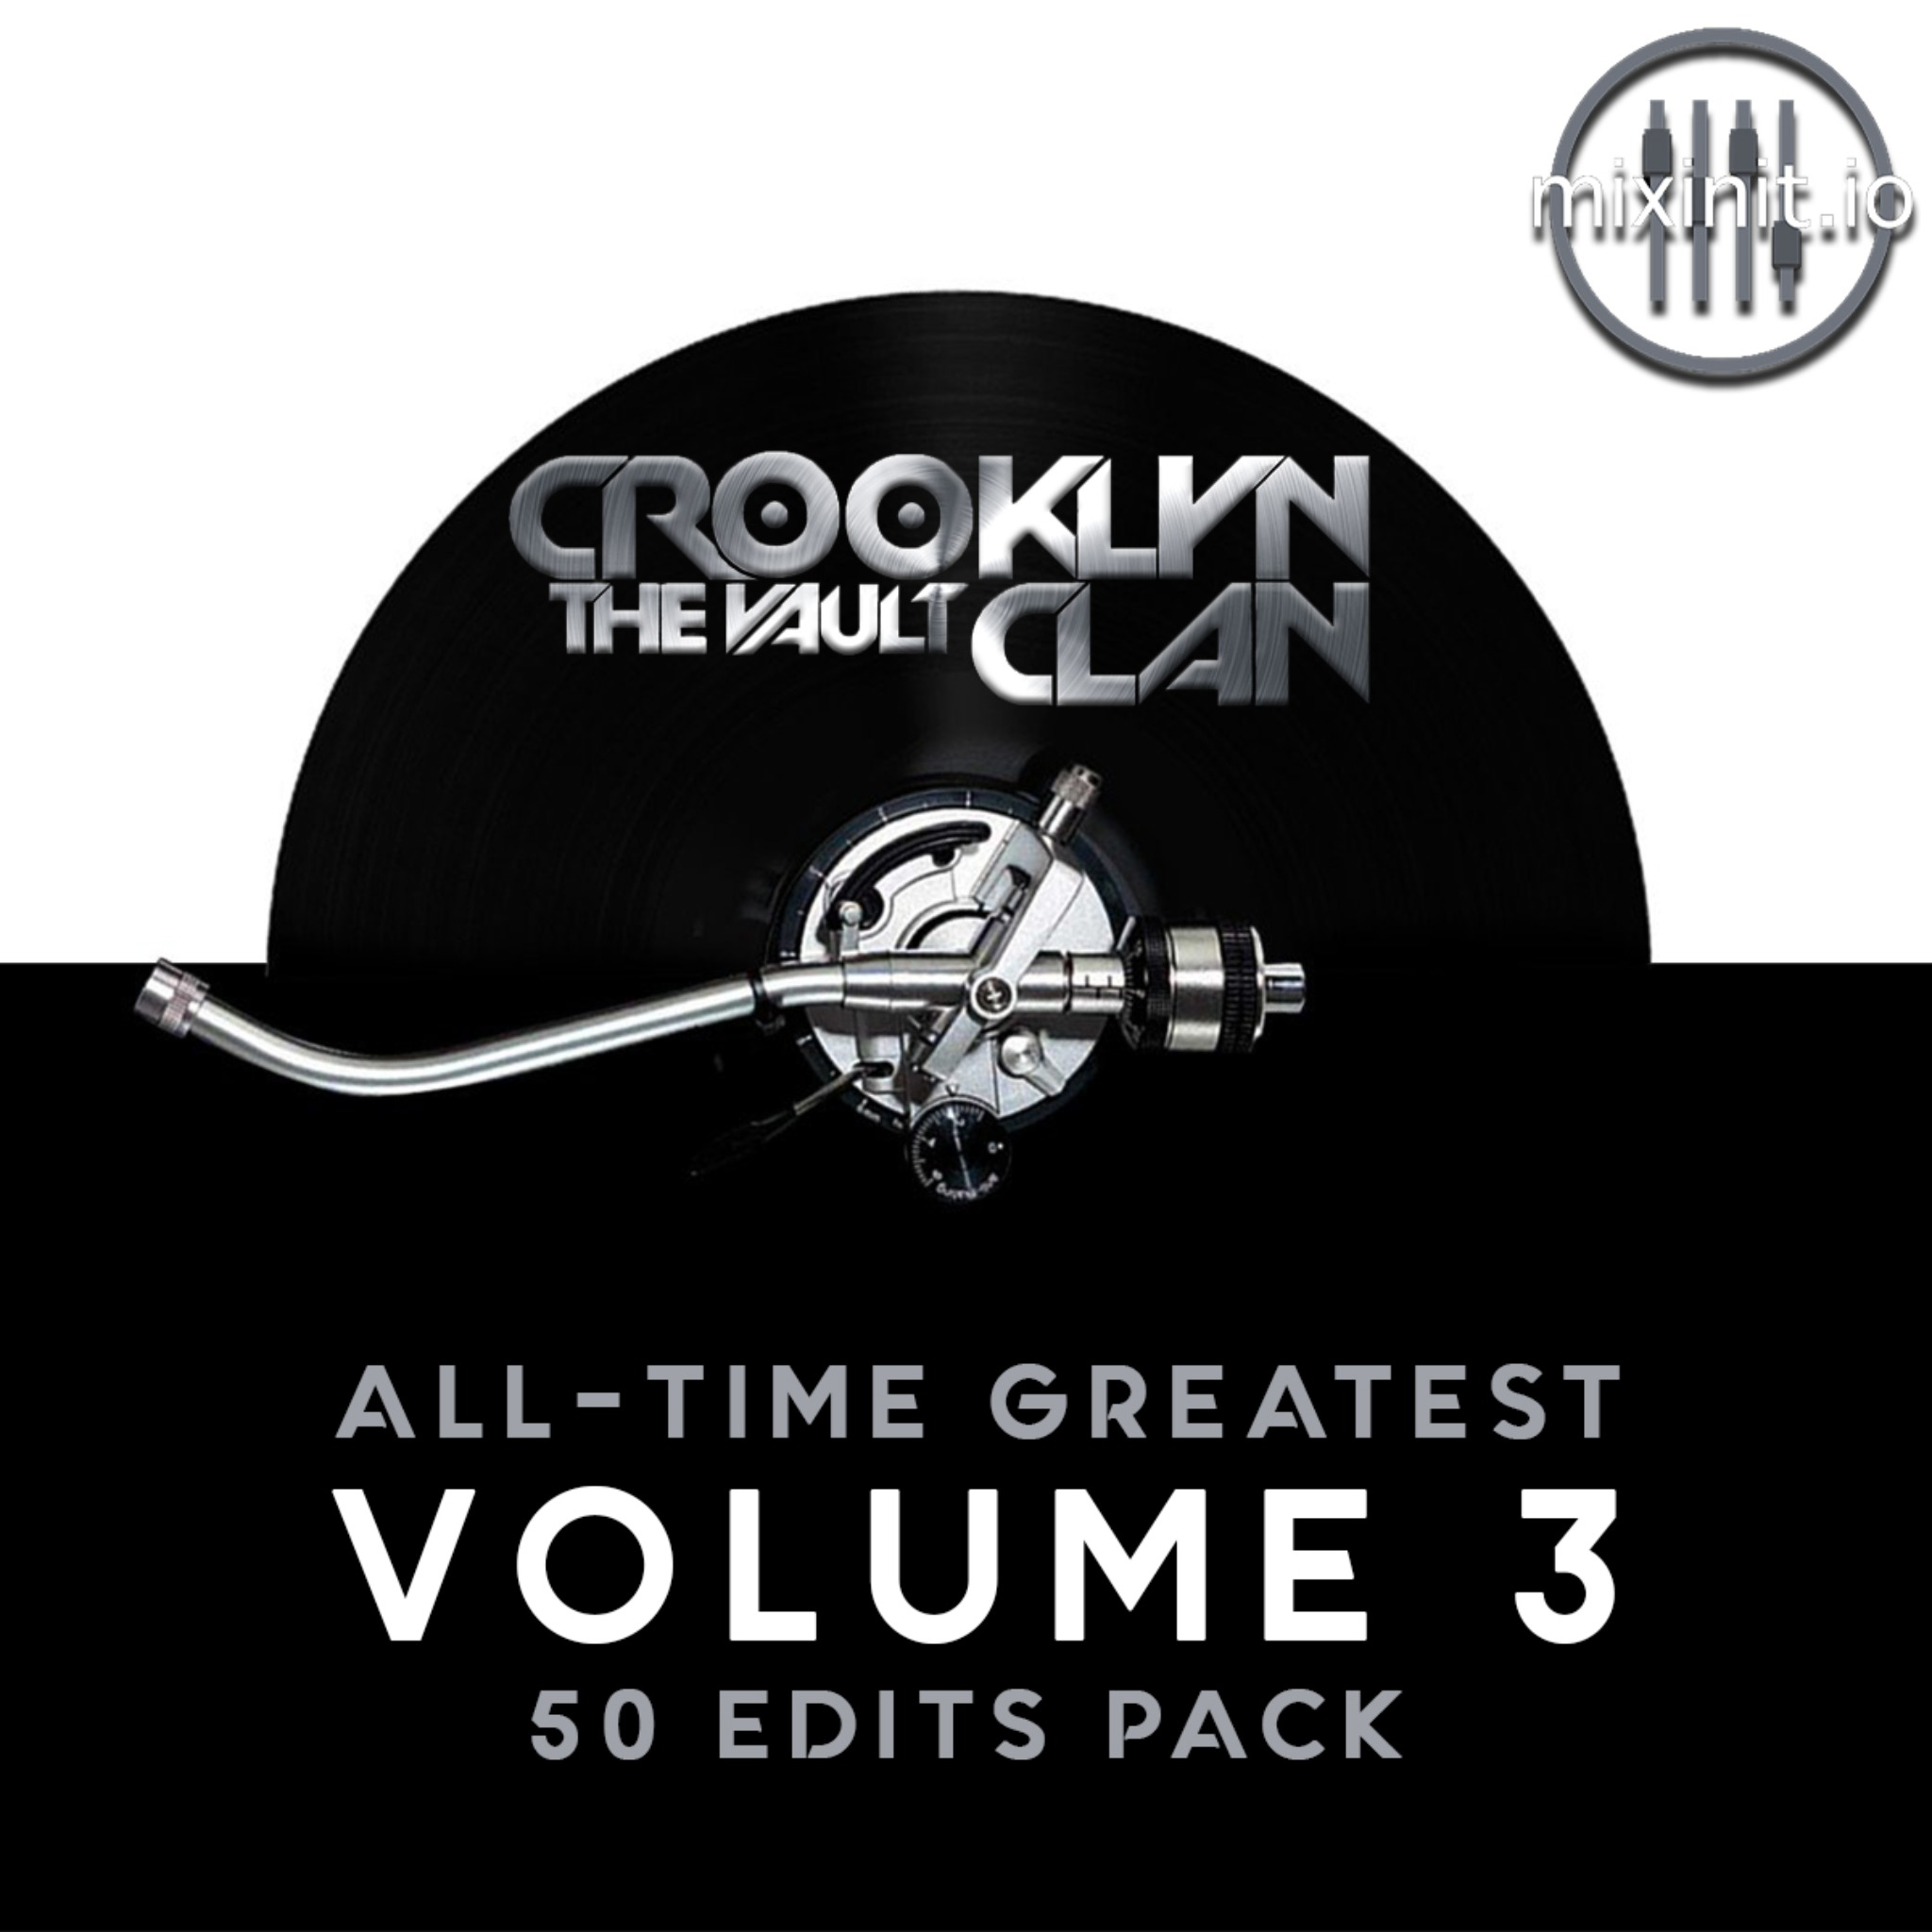 Best Of the Classic Crooklyn Clan Vault Vol. 3 (Various Editors)